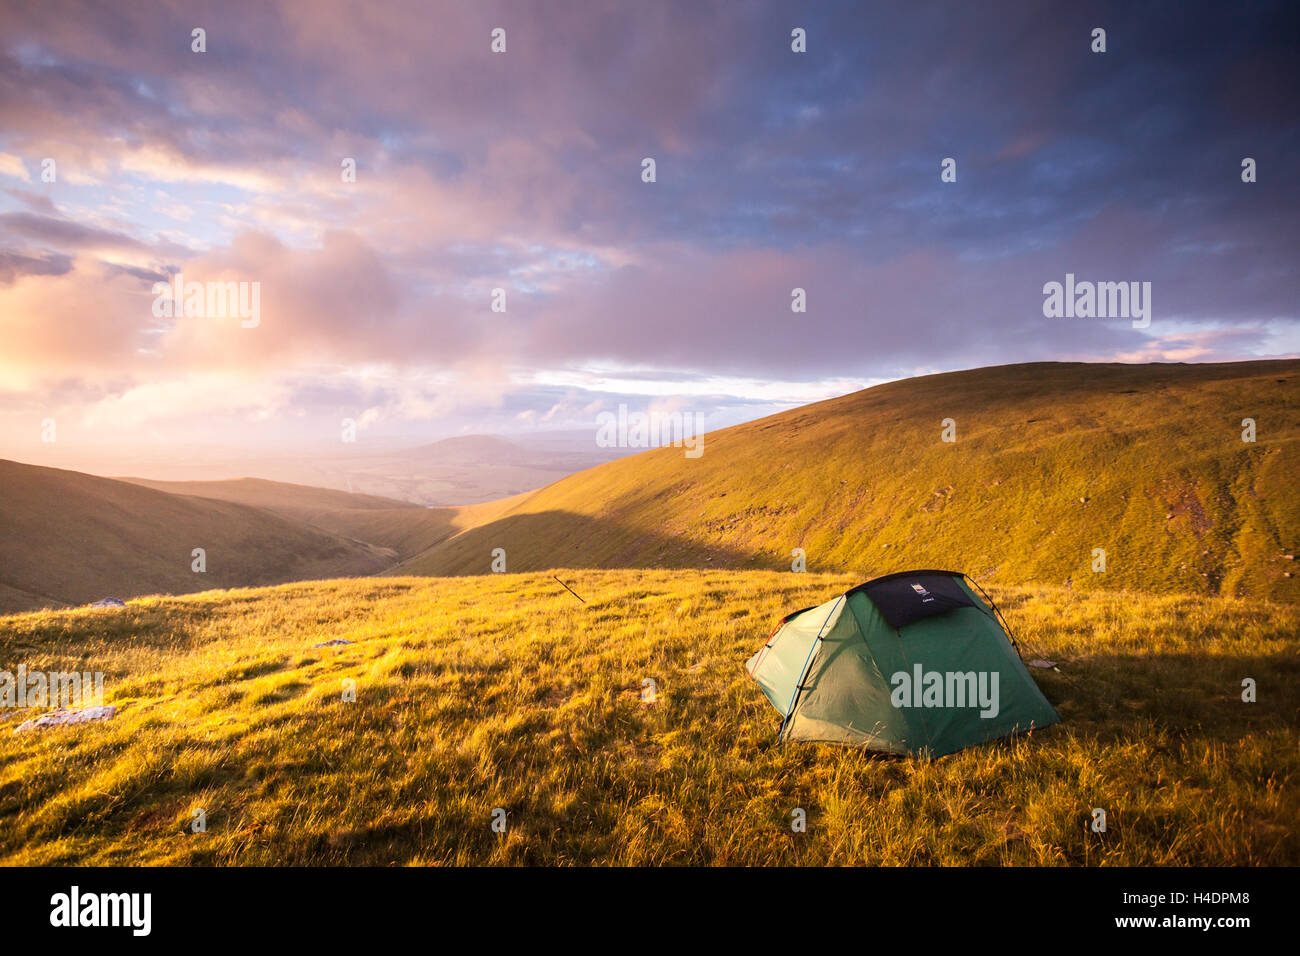 Wild camp little green tent on the side of Blencathra mountain at sunrise in the English Lake District - Stock Image